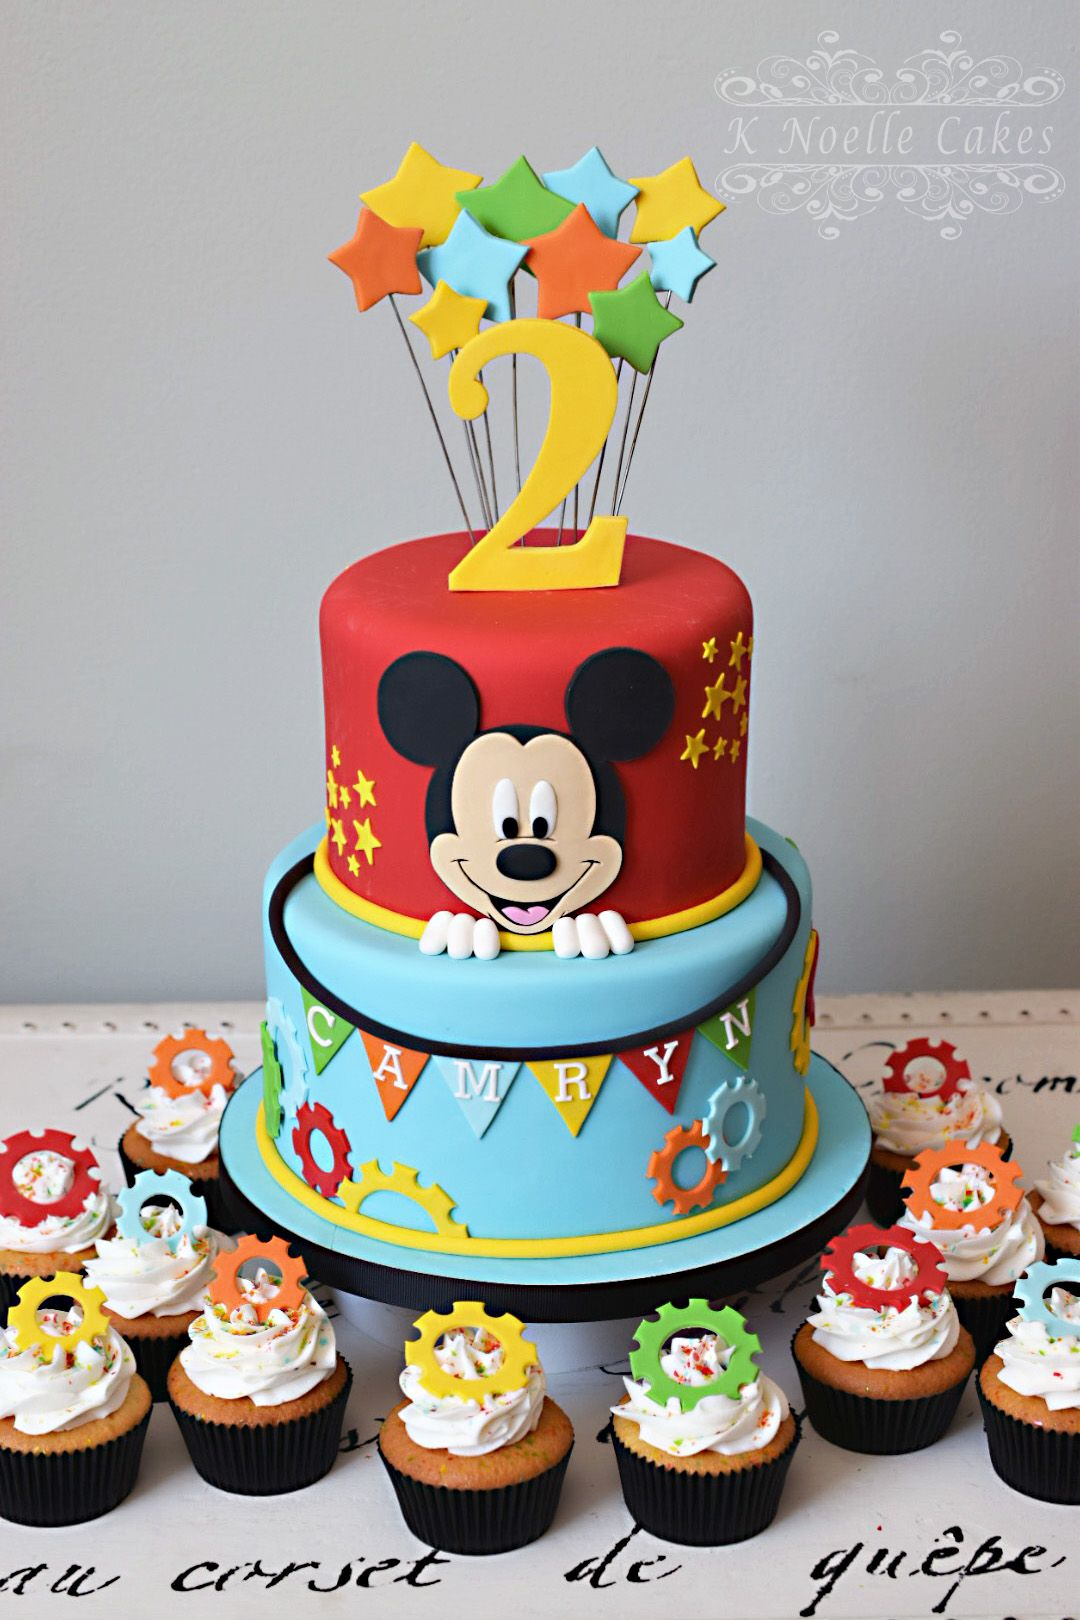 Tremendous Mickey Mouse Clubhouse Theme Cake By K Noelle Cakes With Images Funny Birthday Cards Online Fluifree Goldxyz